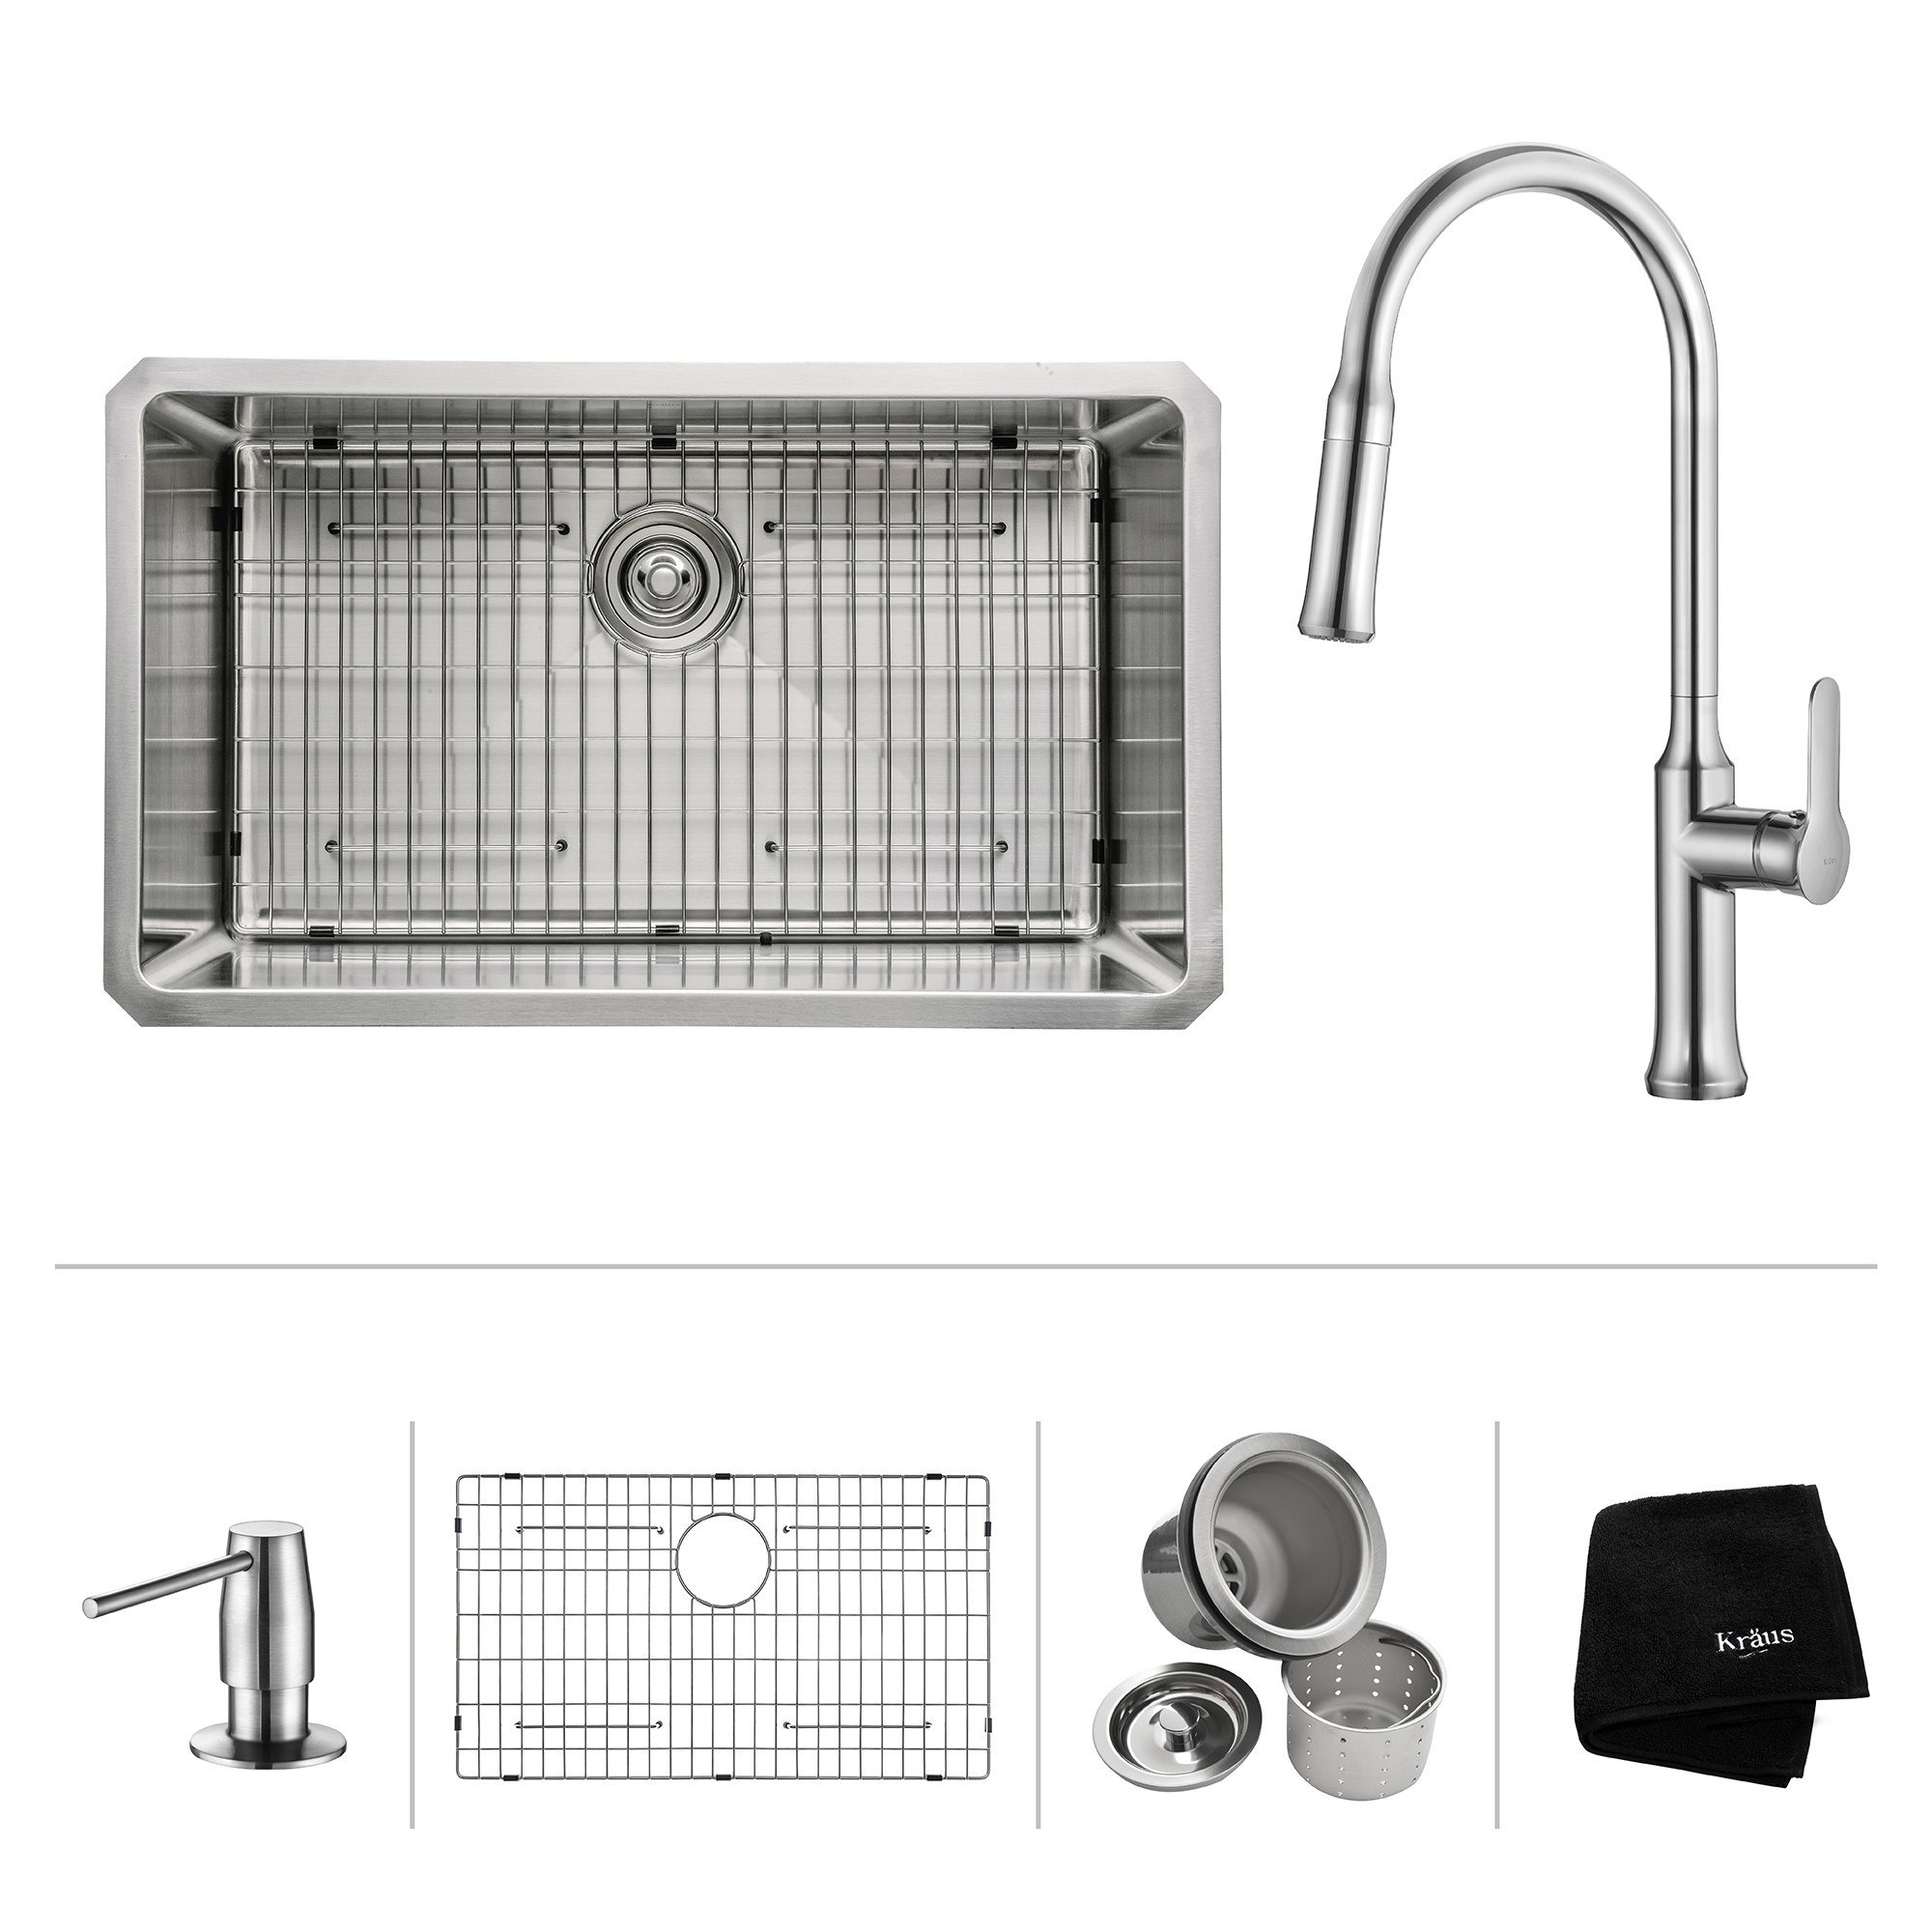 Kraus KHU100-30-1630-42 30 Inch Undermount Single Bowl Stainless Steel Sink with Pull Down Faucet & Soap Dispenser